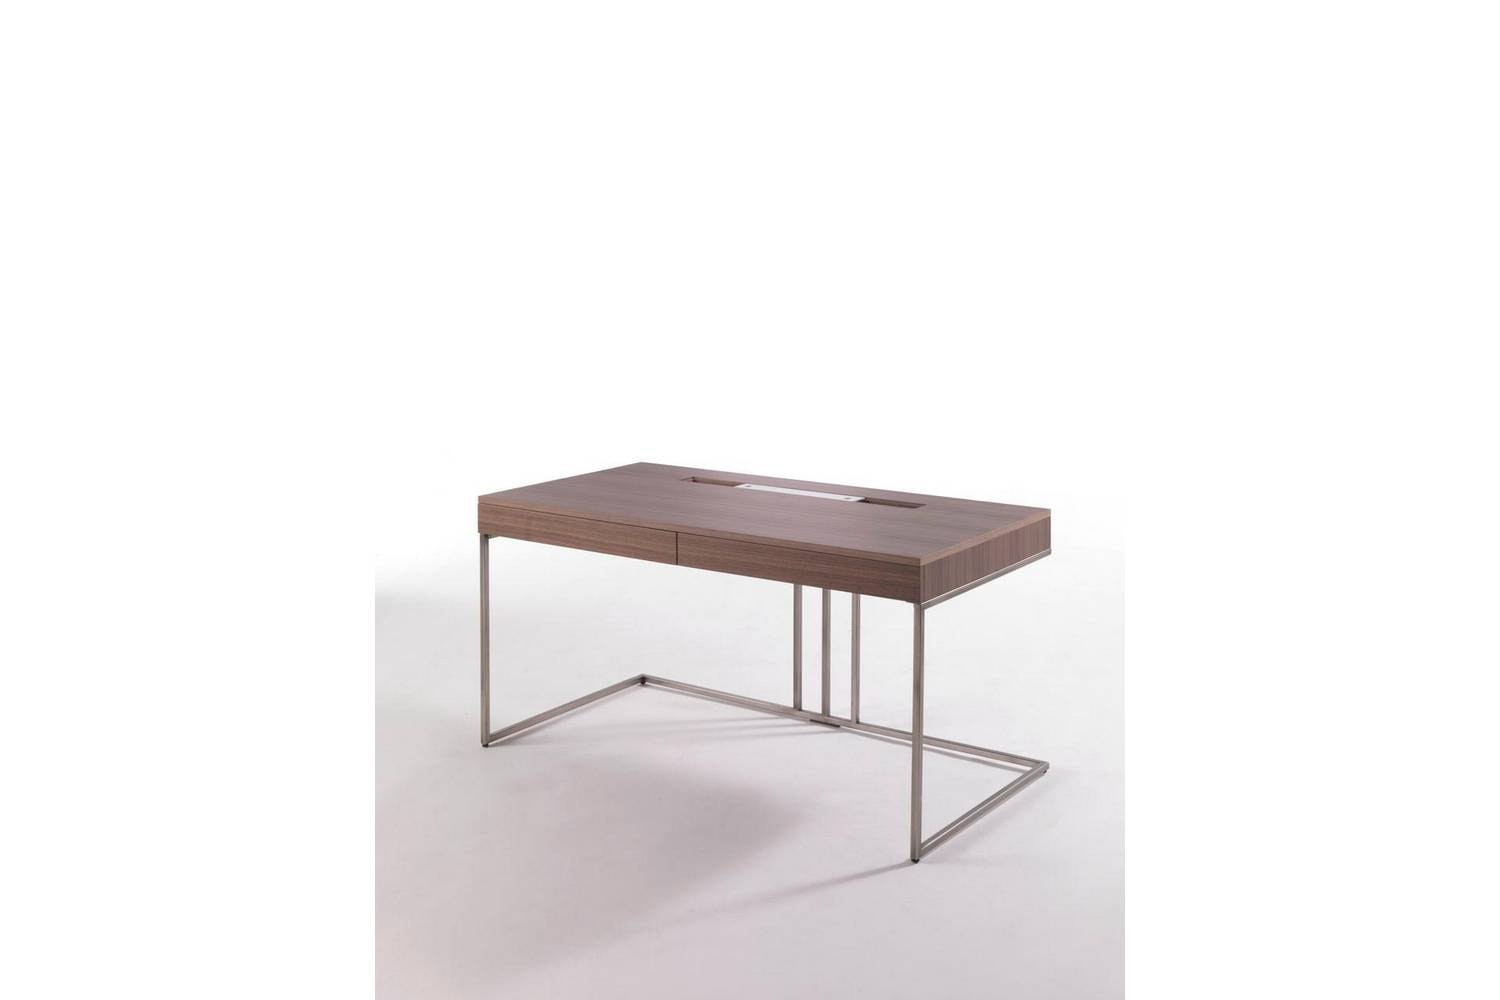 Kepler Writing Desk by G. Azzarello for Porada